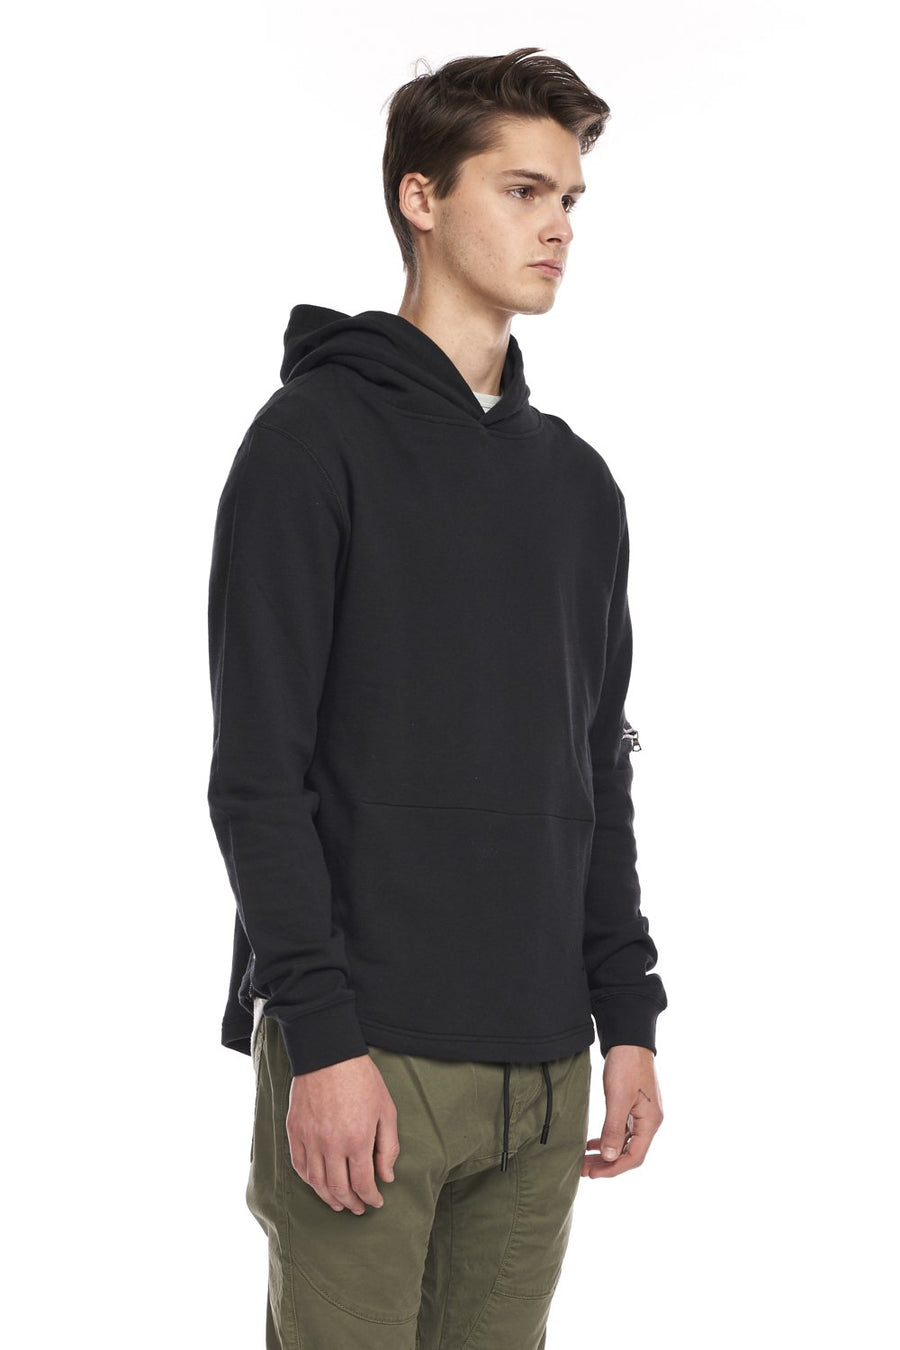 kuwalla tee crash hood 2.0 black